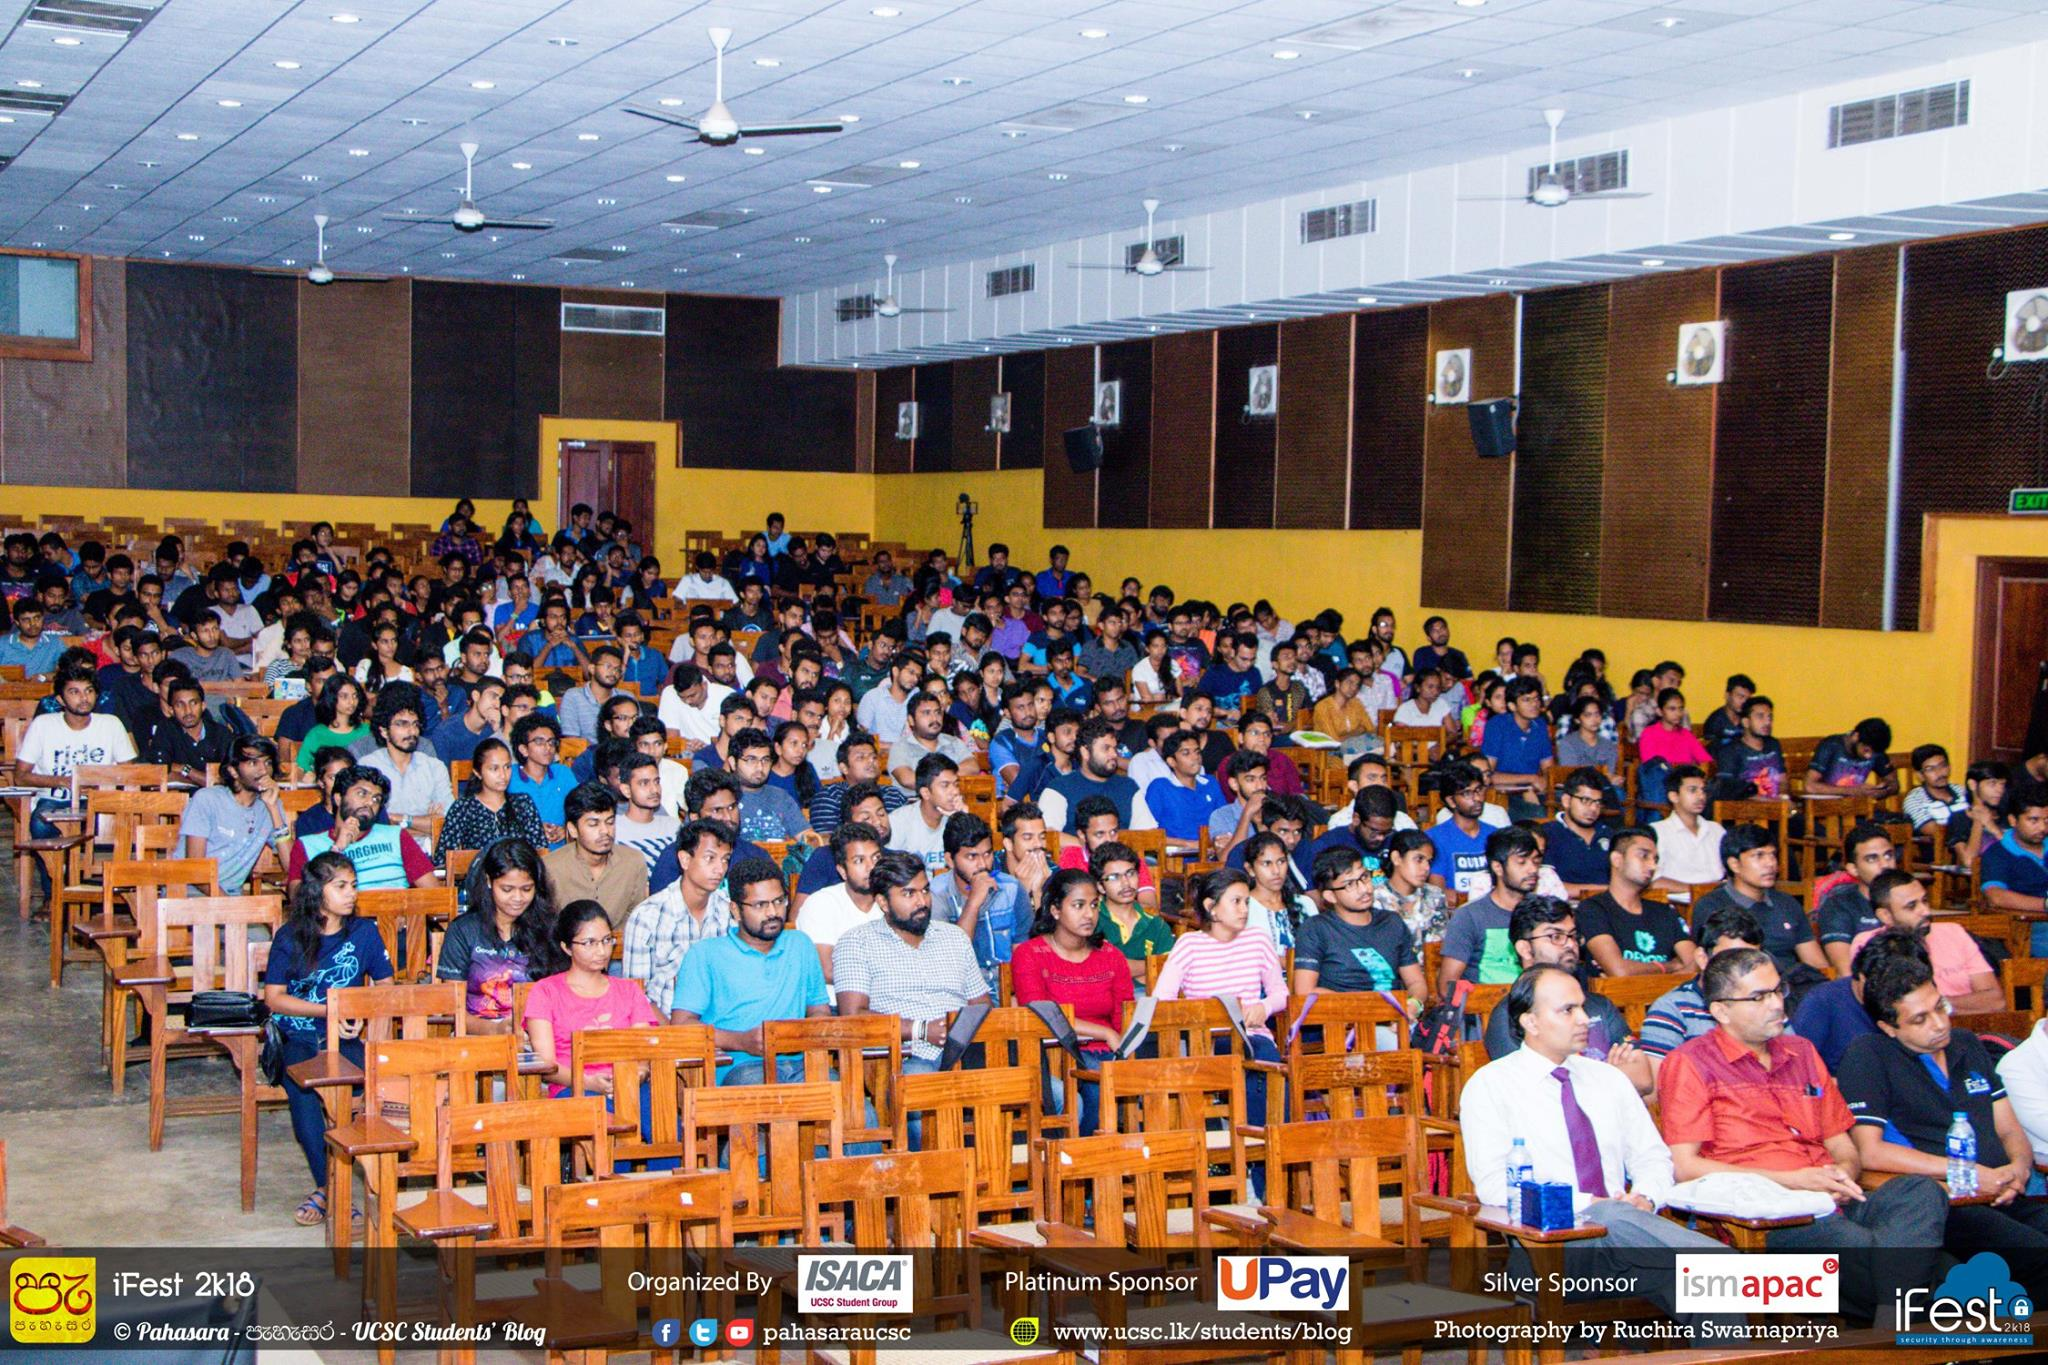 iFest 2k18 – Tech Conference on Information Security and